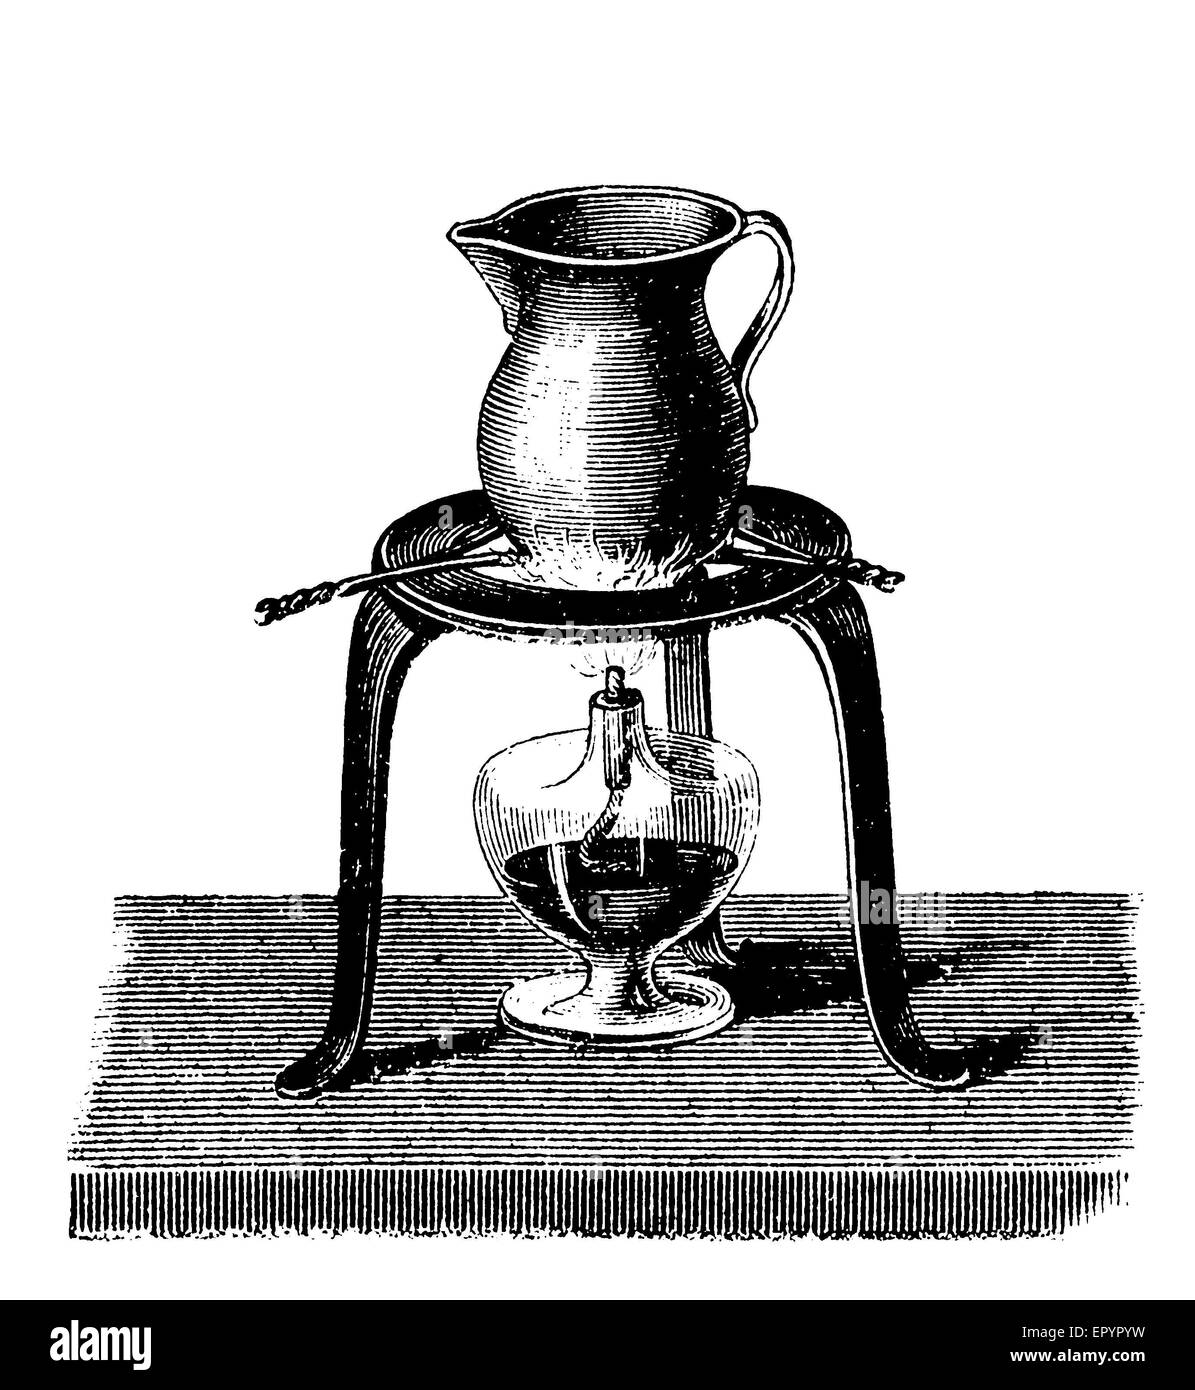 Vintage engraving, the jug, containing ashes or sand and some friction matches, is heated with an alcohol lamp. - Stock Image